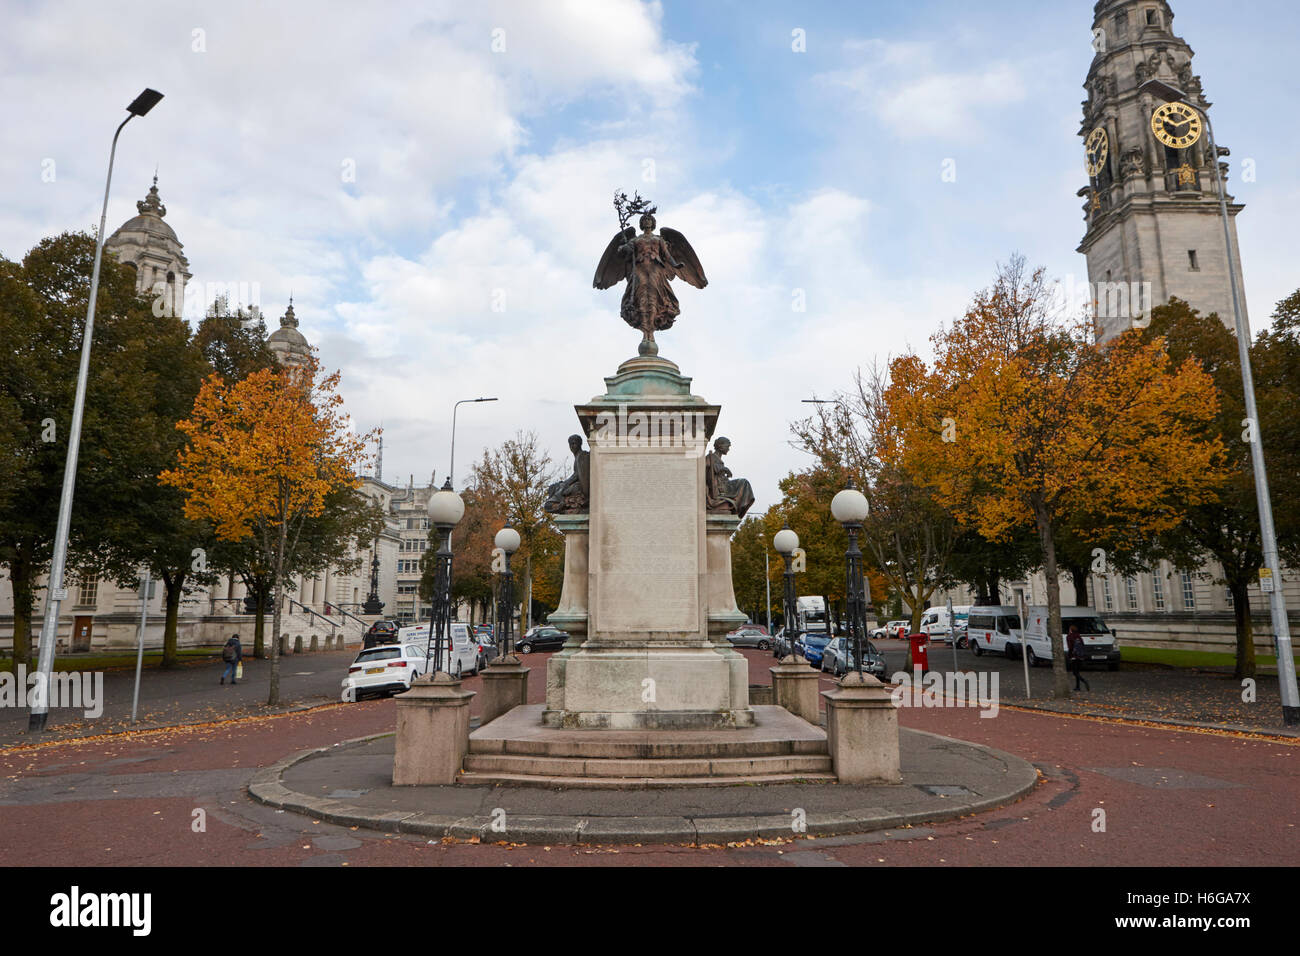 Boer south african war memorial on king edward VII avenue cathays park Cardiff Wales United Kingdom - Stock Image